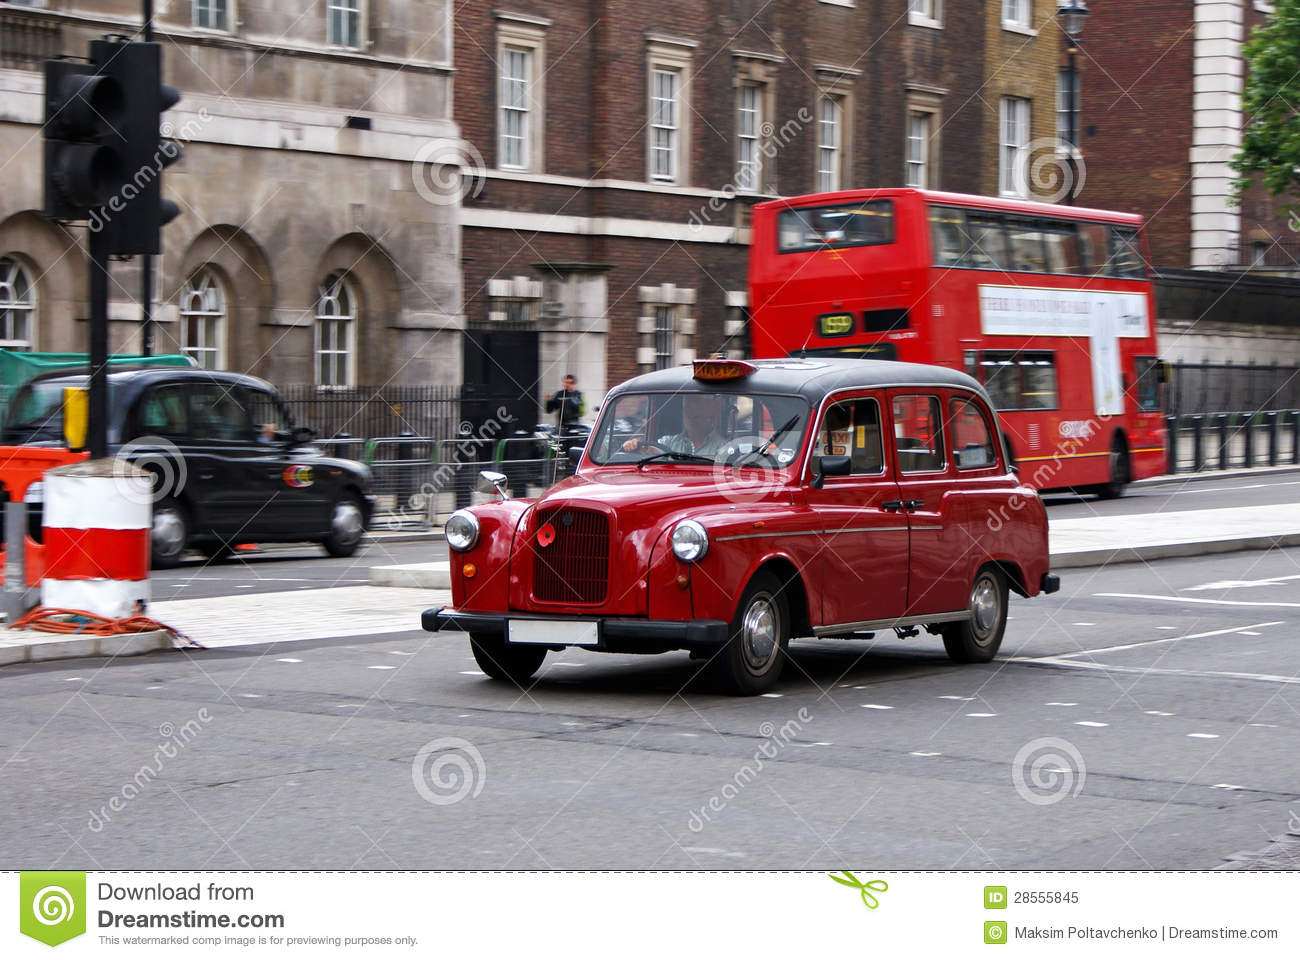 vieux taxi de londres image stock image du londres ville 28555845. Black Bedroom Furniture Sets. Home Design Ideas